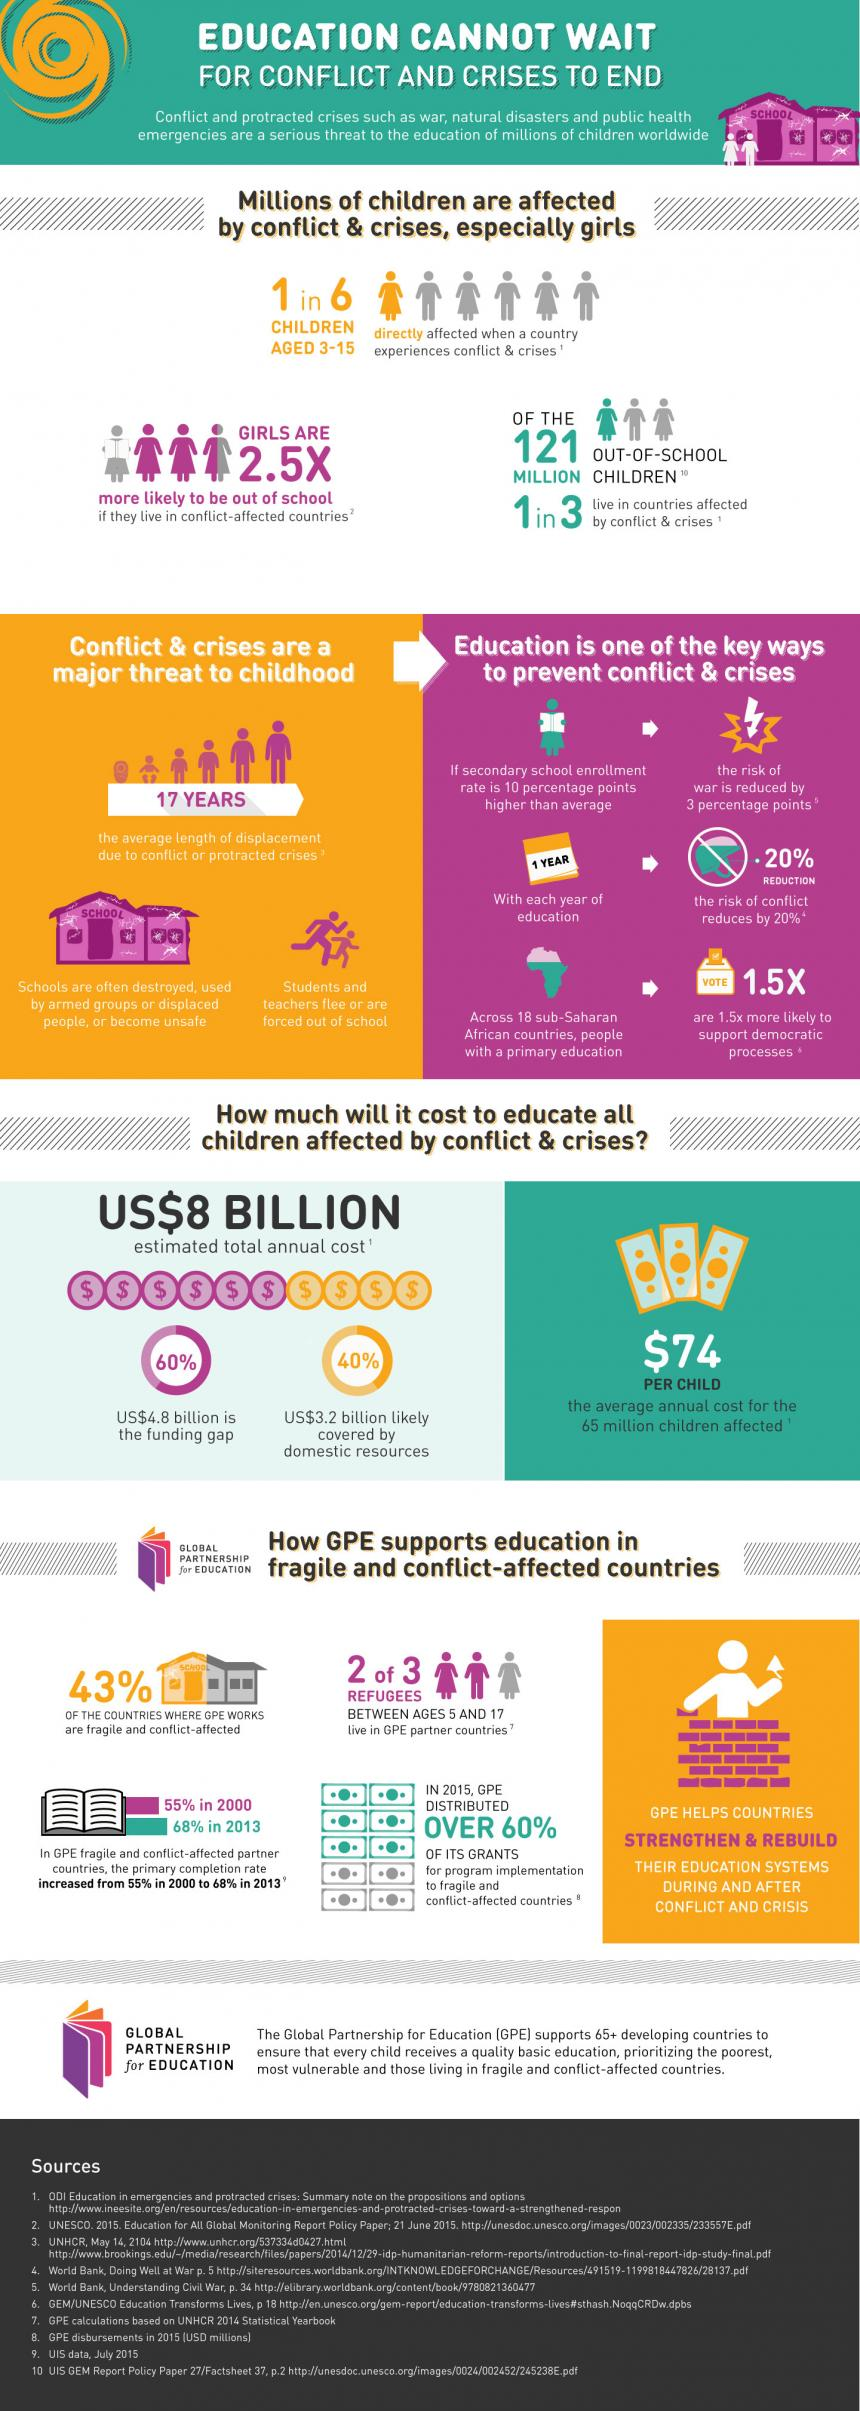 Infographic: Education cannot wait for conflict and crises to end